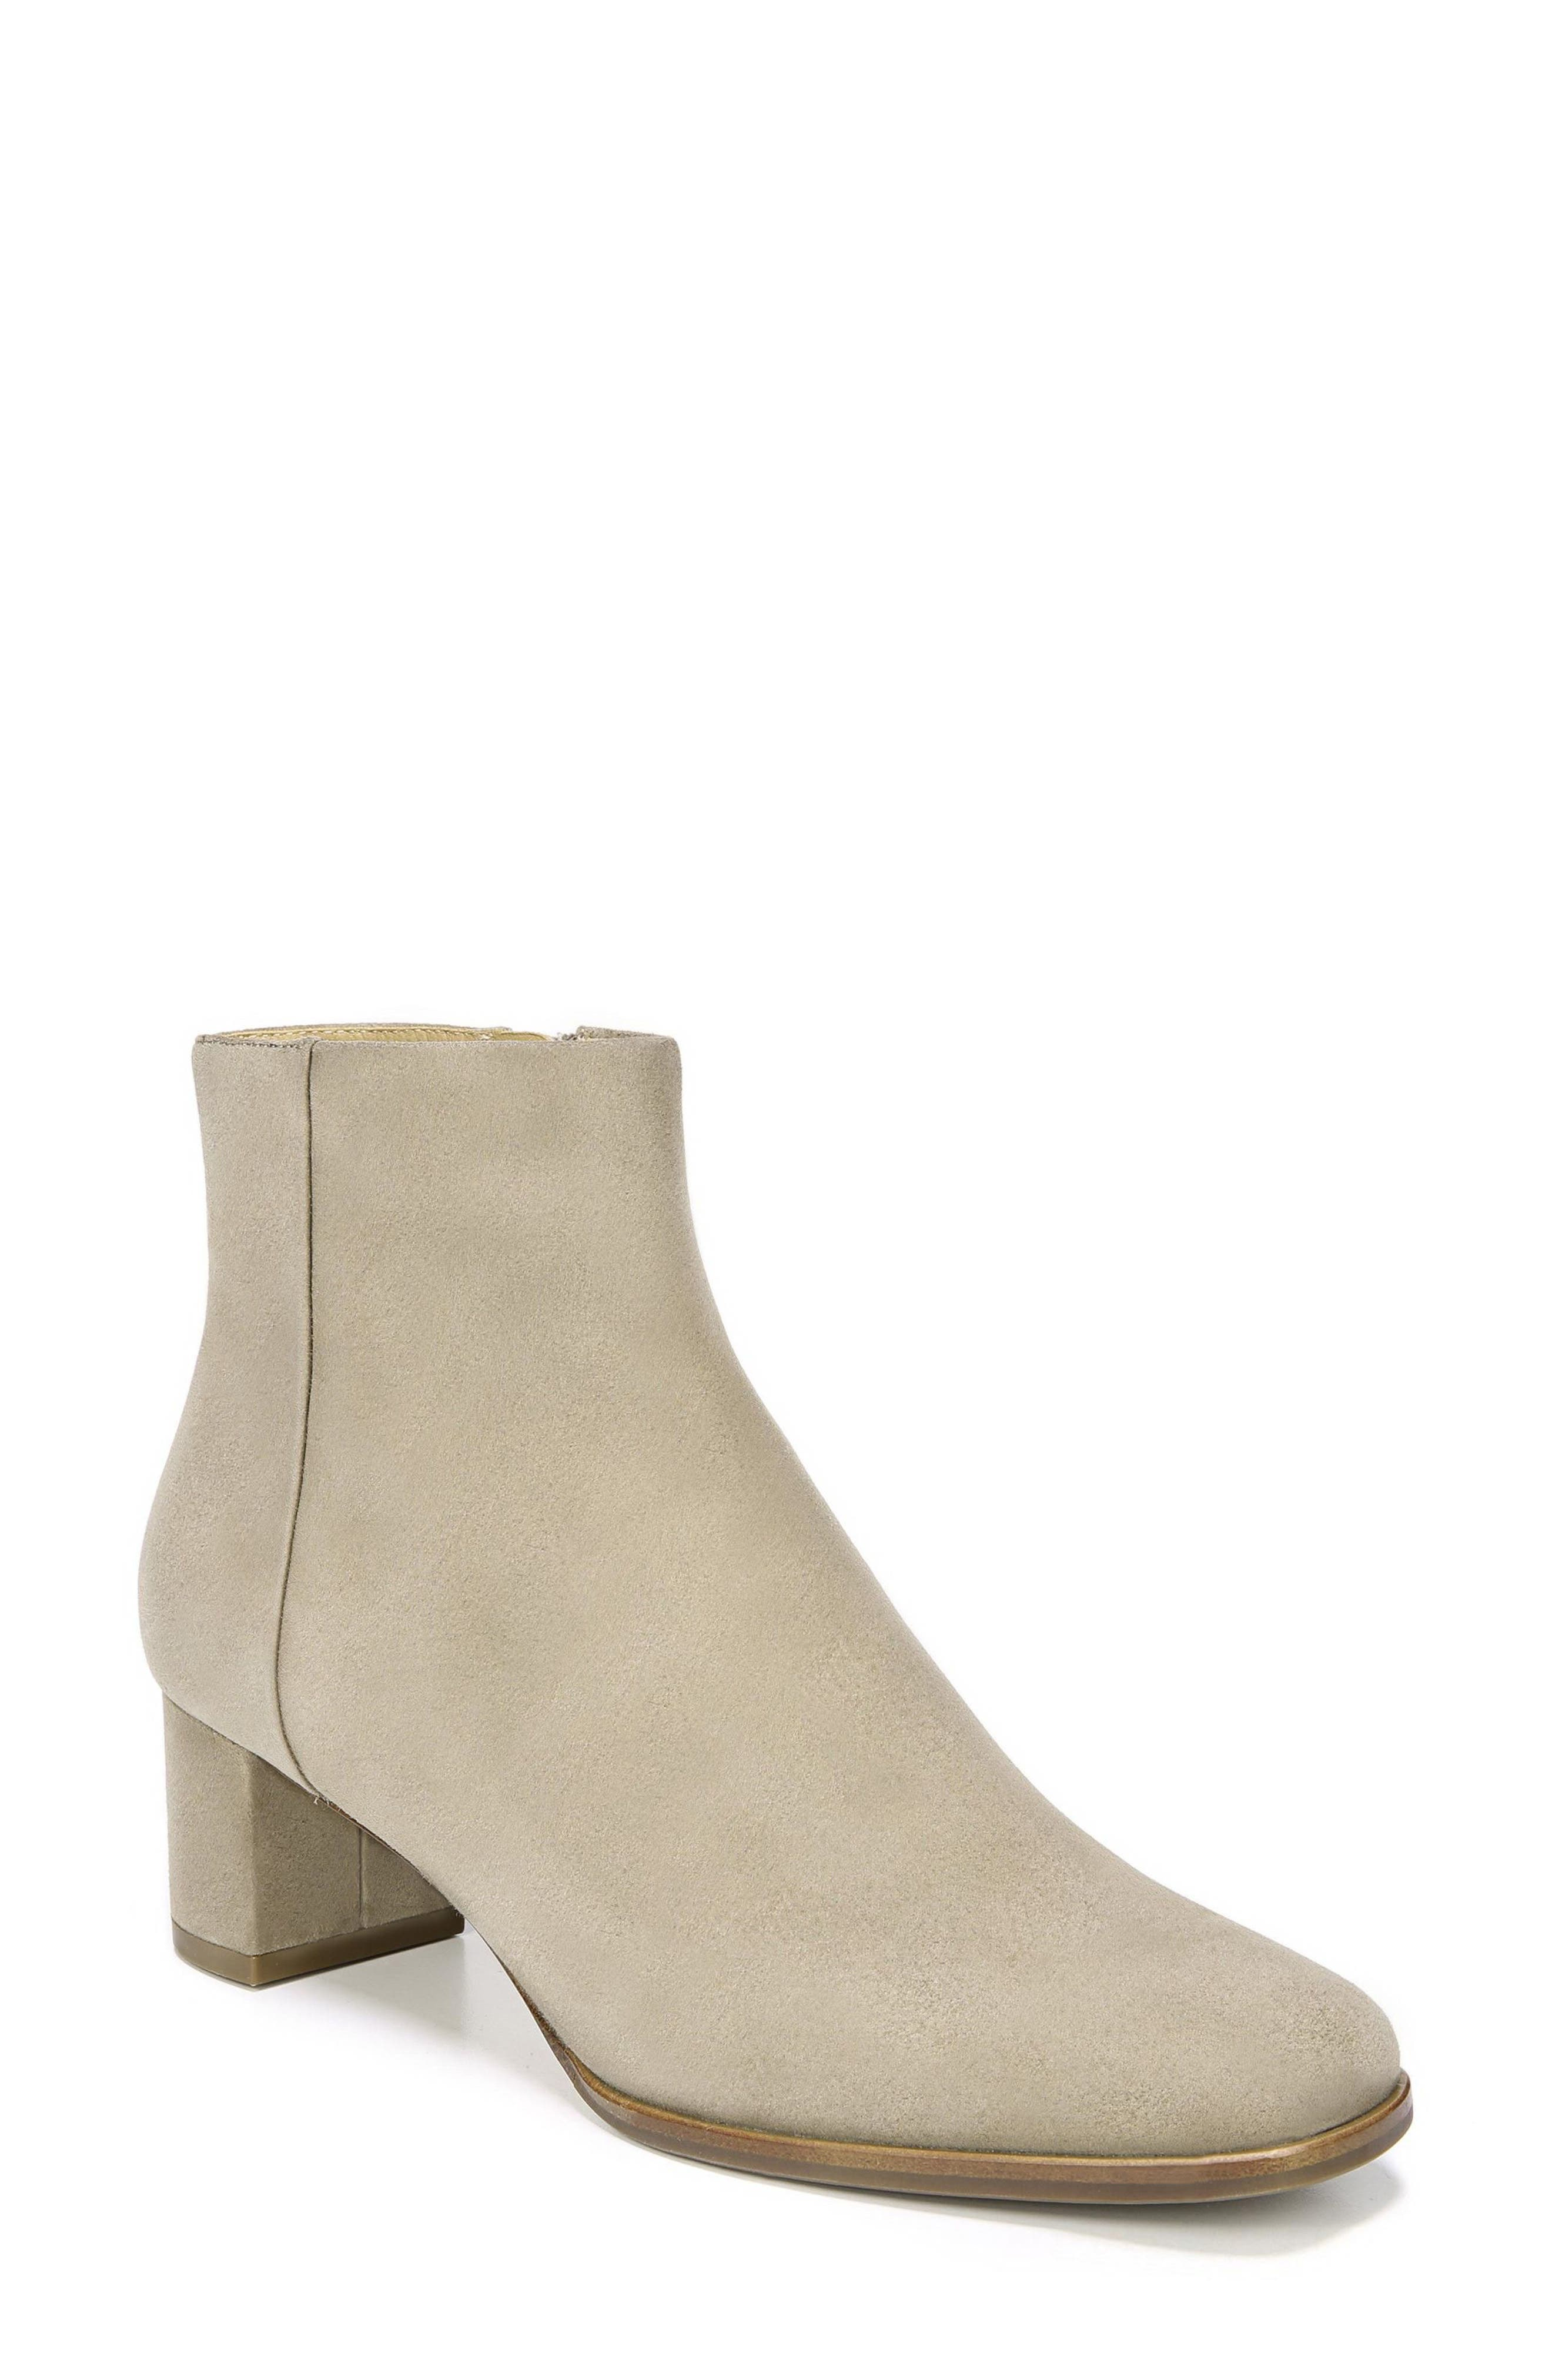 Alternate Image 1 Selected - Via Spiga Vinson Bootie (Women)